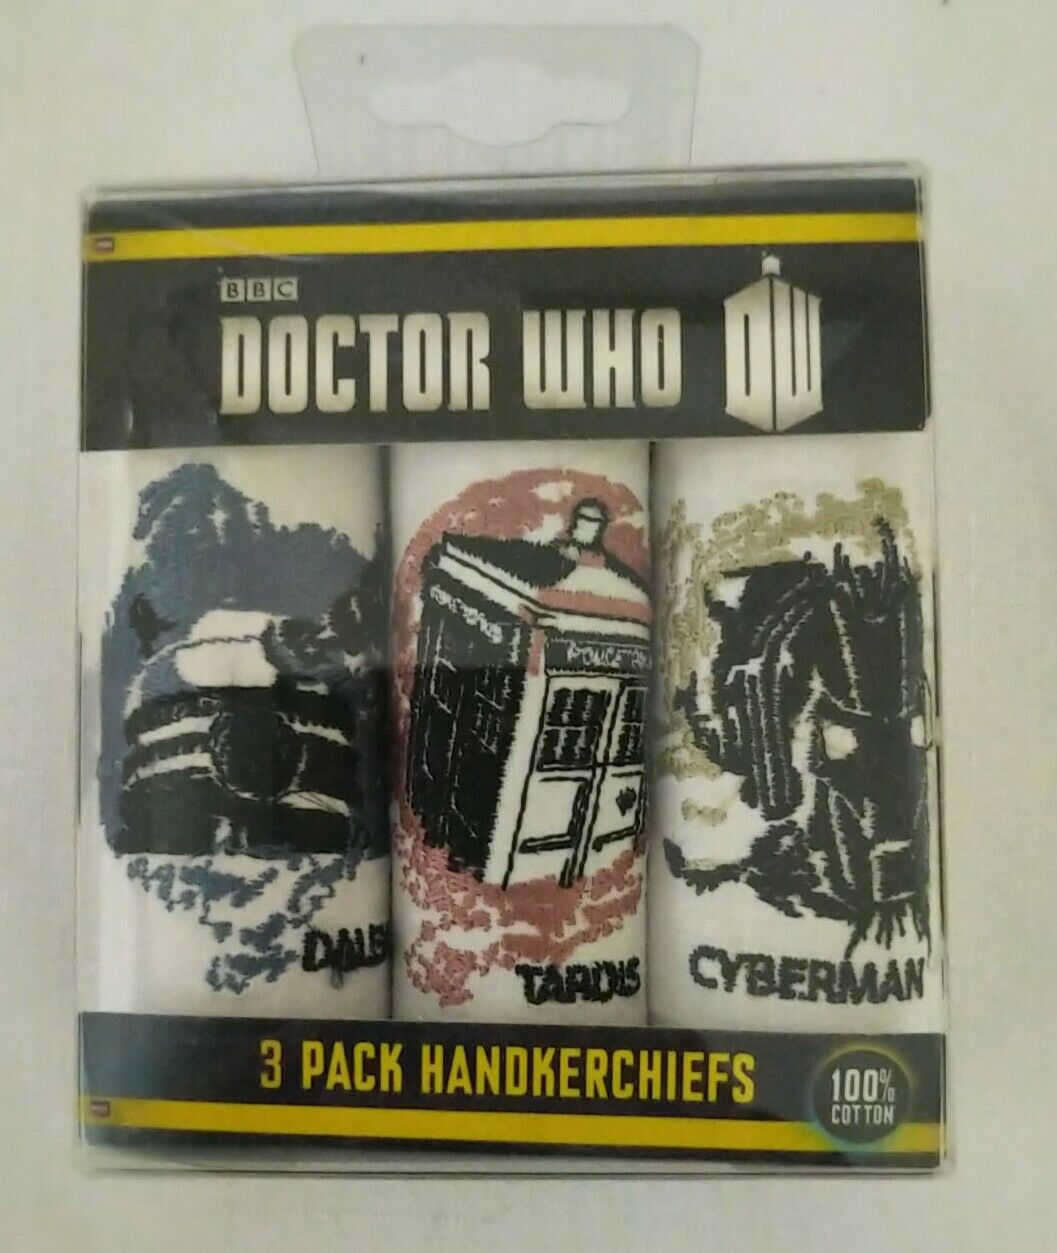 Doctor Who 3 Pack Handkerchiefs 100% Cotton